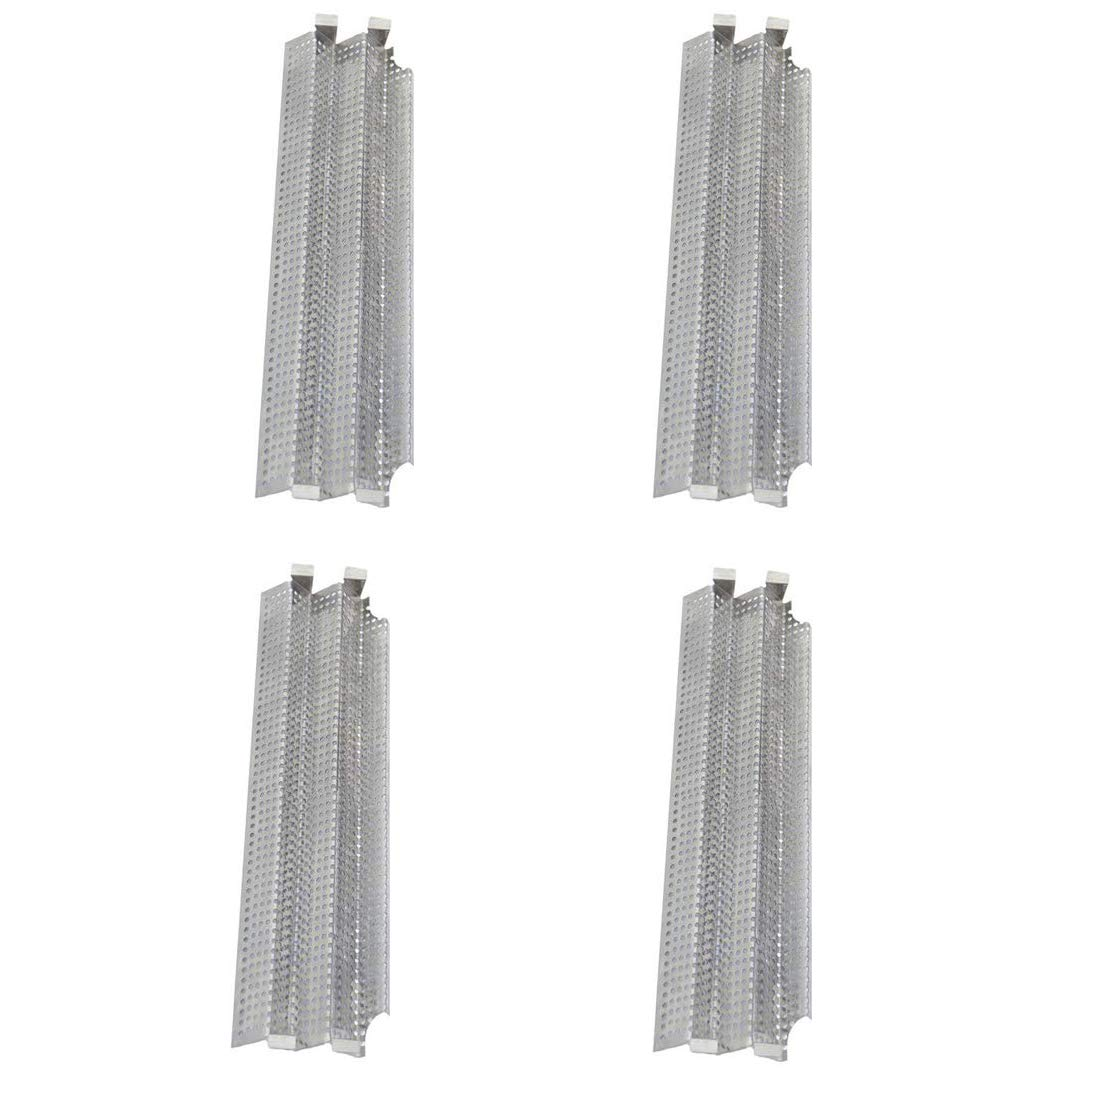 Votenli S9408A (4-Pack) Stainless Steel Heat Plate Replacement for Viking VGBQ 30 in T Series, VGBQ 41 in T Series, VGBQ 53 in T Series, VGBQ30, VGBQ41, VGBQ53 by Votenli